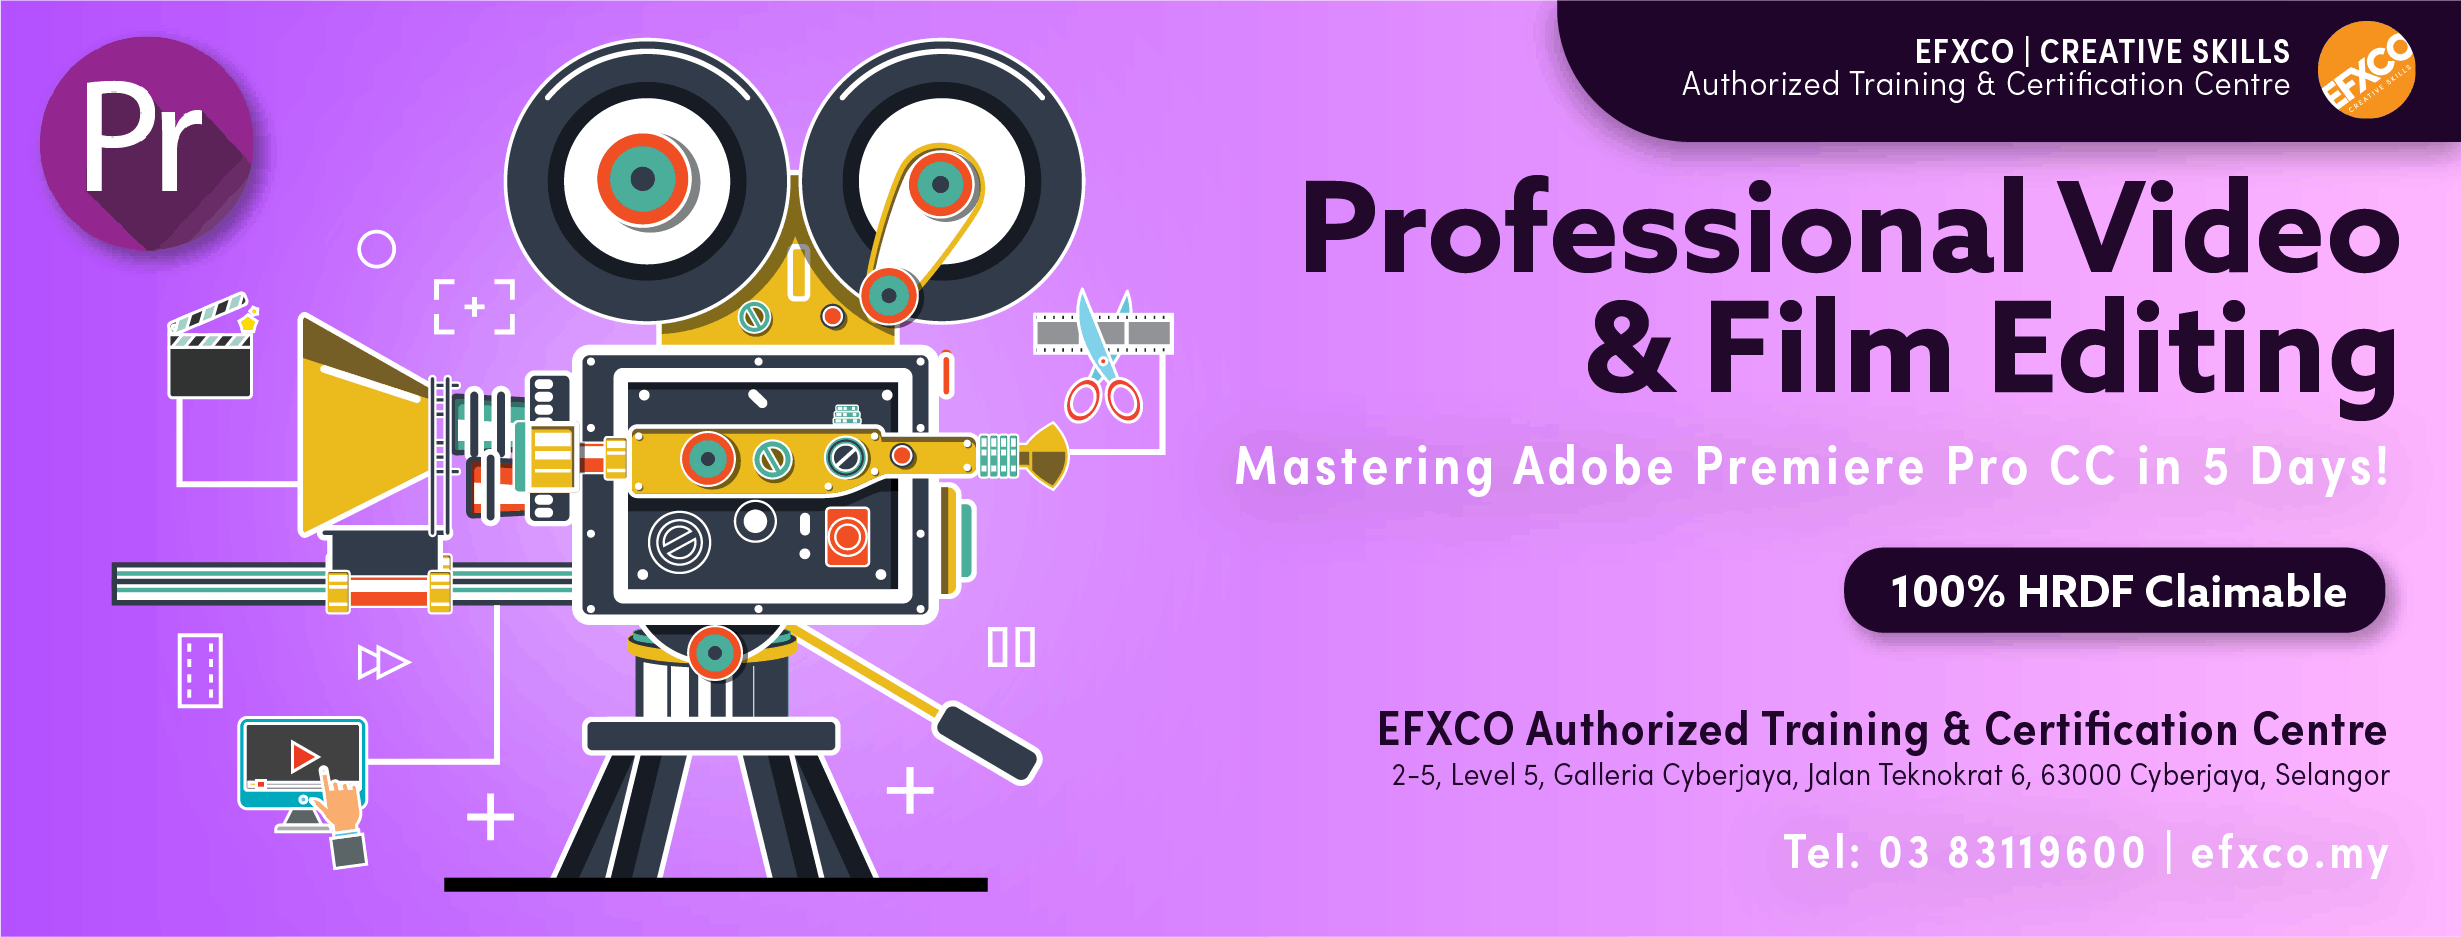 AUTHORISED TRAINING Mastering Adobe Premier Pro CC in 5 Days